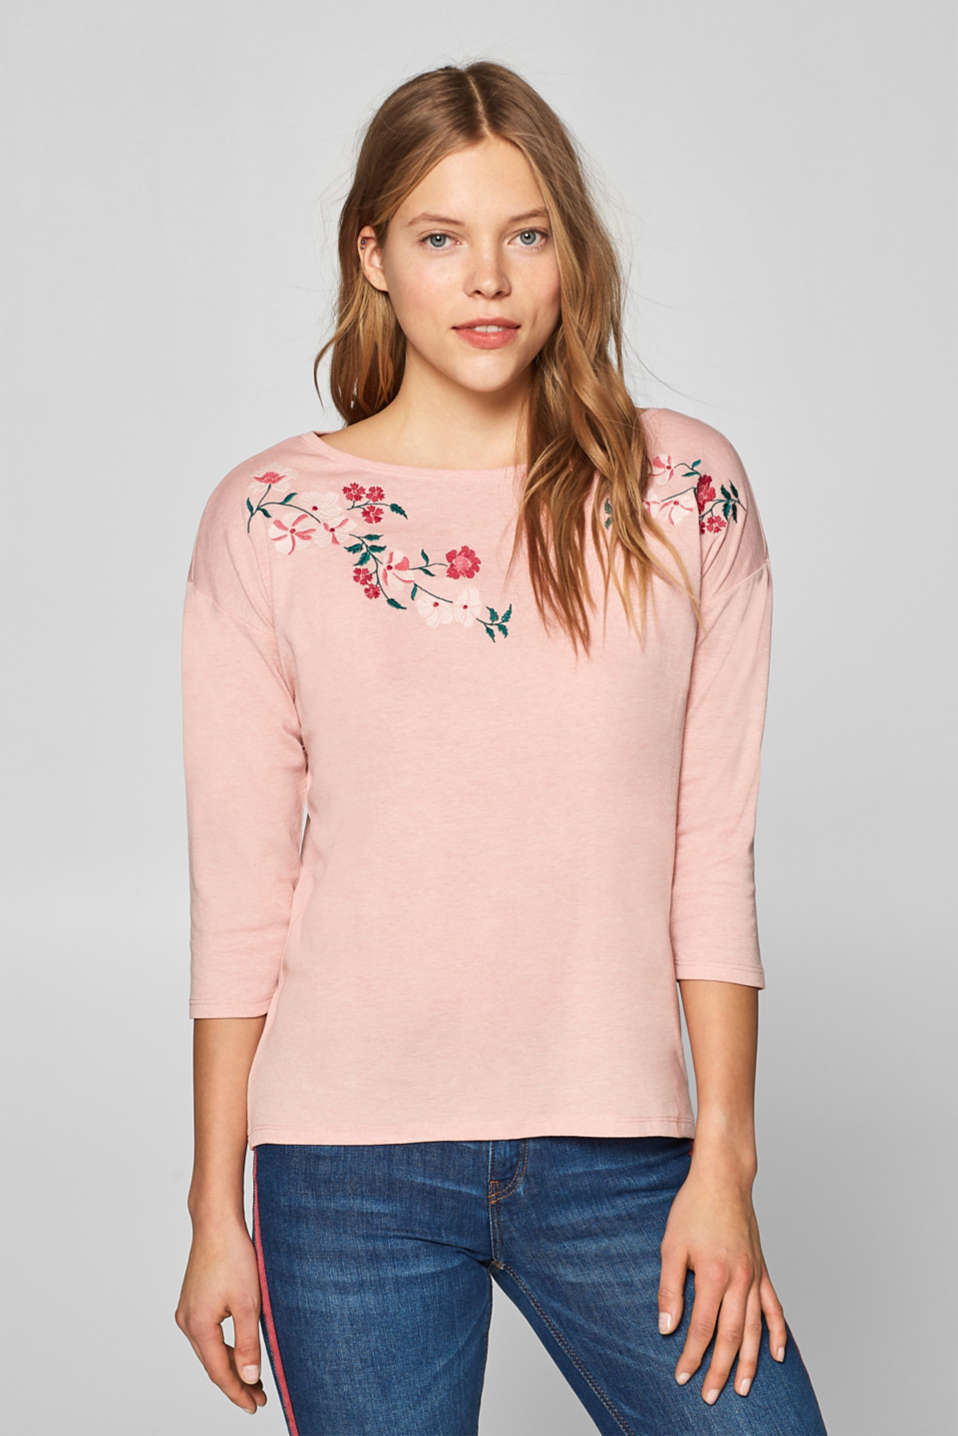 edc - Top with floral embroidery and bateau neckline